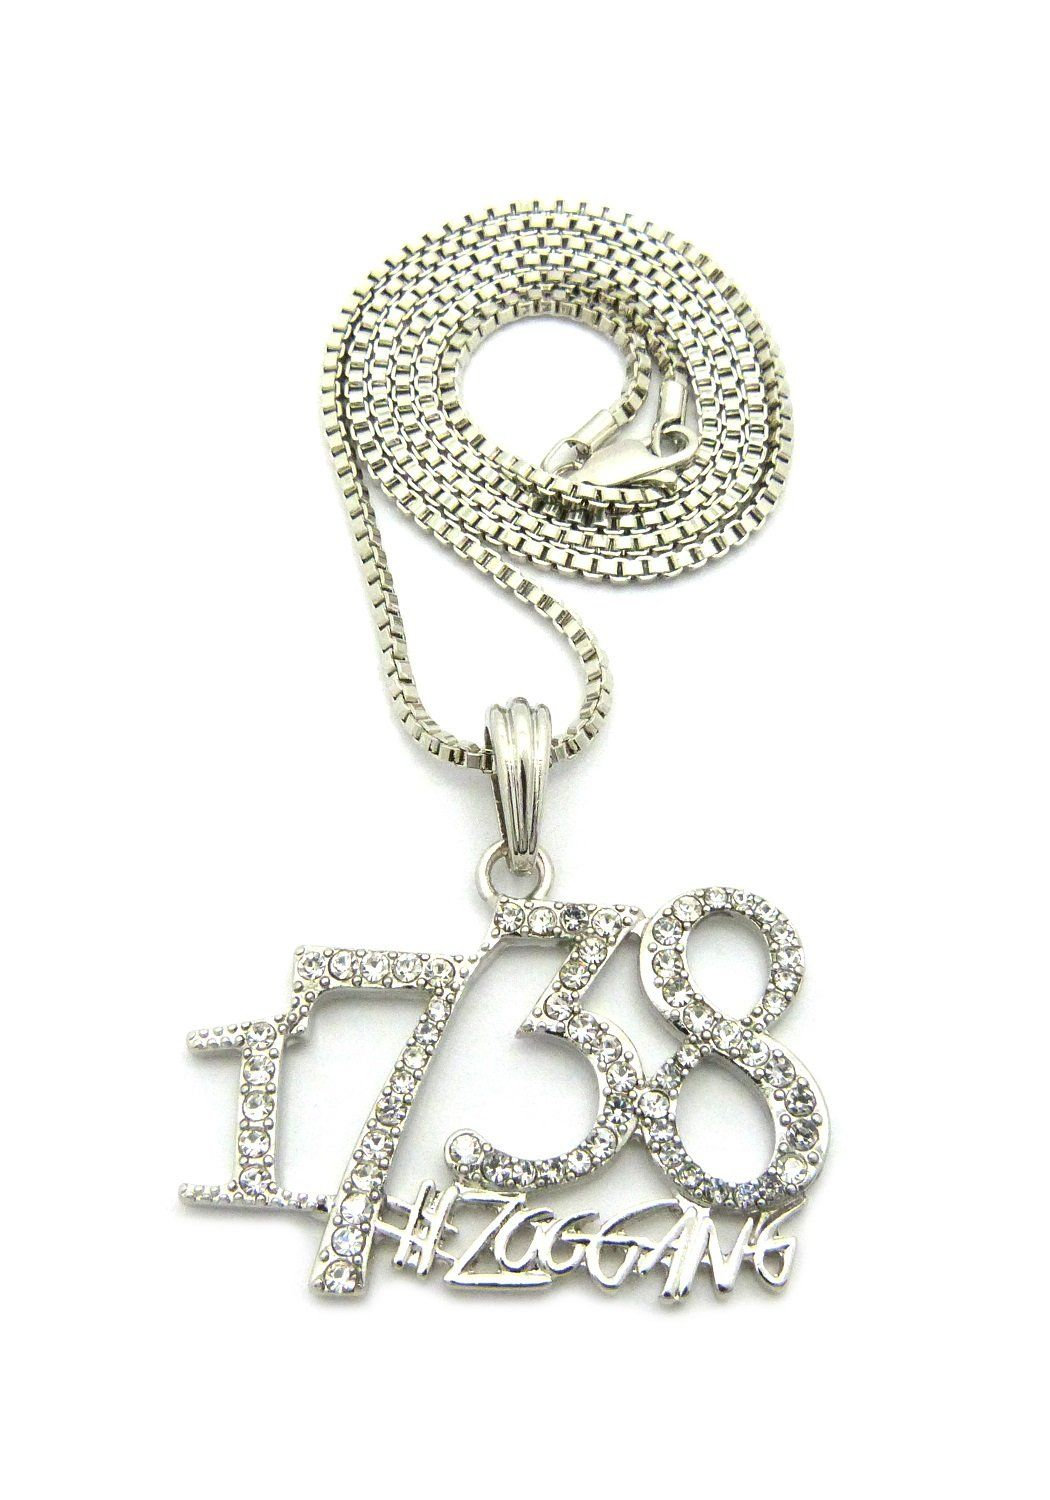 "Hip Hop Pave 1738 ZooGang Pendant 24"" Various Chain Necklace Silver-Tone (3 Chains Available) (2mm 24"" Box Chain ). Hip Hop Pave 1738 ZooGang Pendant 24"" Various Chain Necklace Silver-Tone (3 Chains Available). Size of Pendant: 1.75"" X 1.75"". Chain: 2mm 24"" Box Chain, 4mm 24"" Cuban Chain, 2mm 24"" Franco Chain. Imitation Silver Tone Plated. Fashion Costume Jewelry."